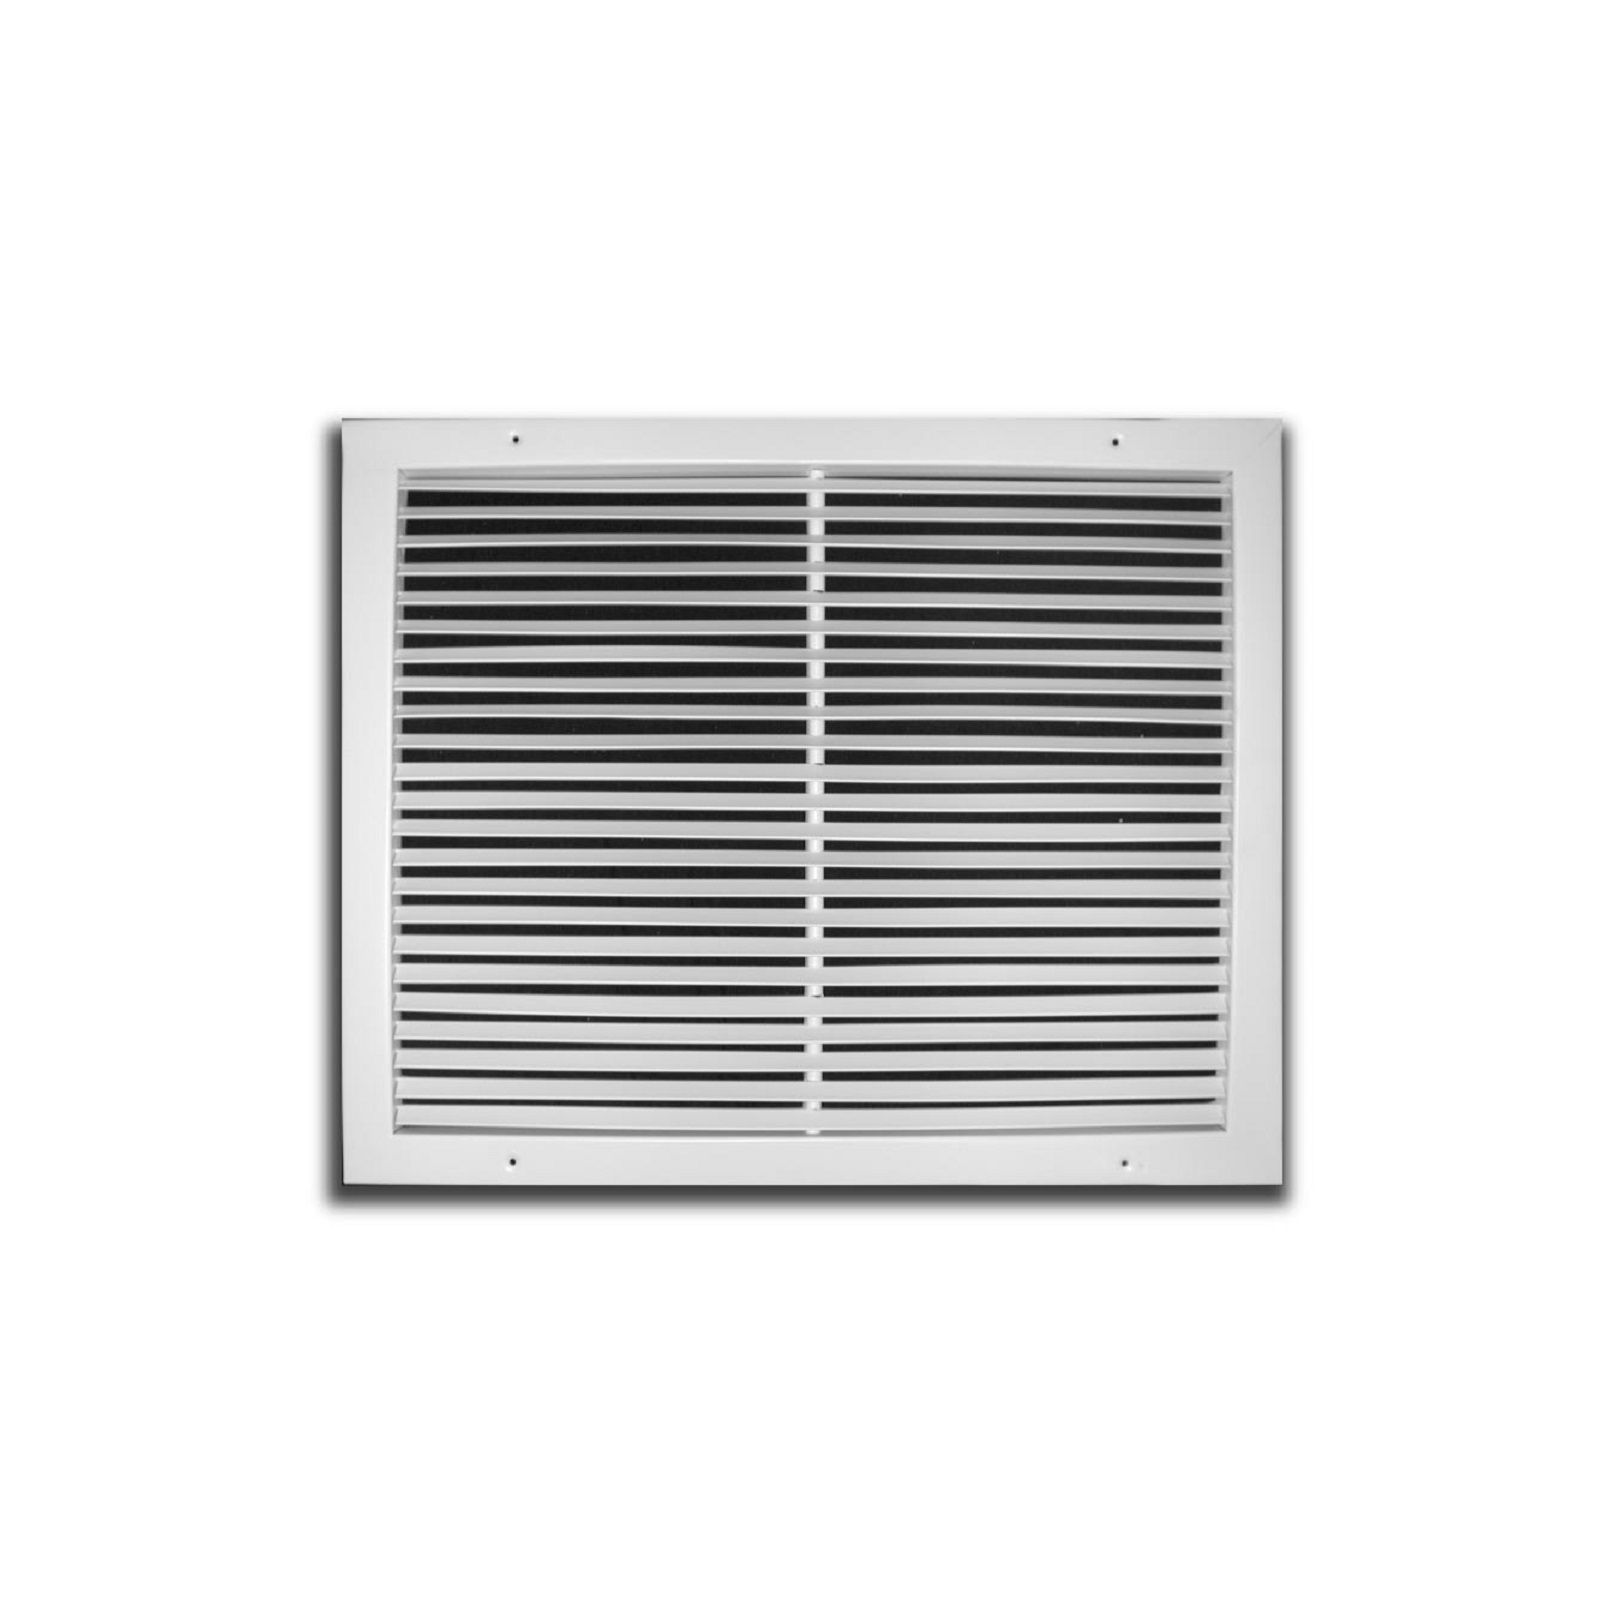 "TRUaire 270 16X24 - Steel Fixed Bar Return Air Grille, White, 16"" X 24"""